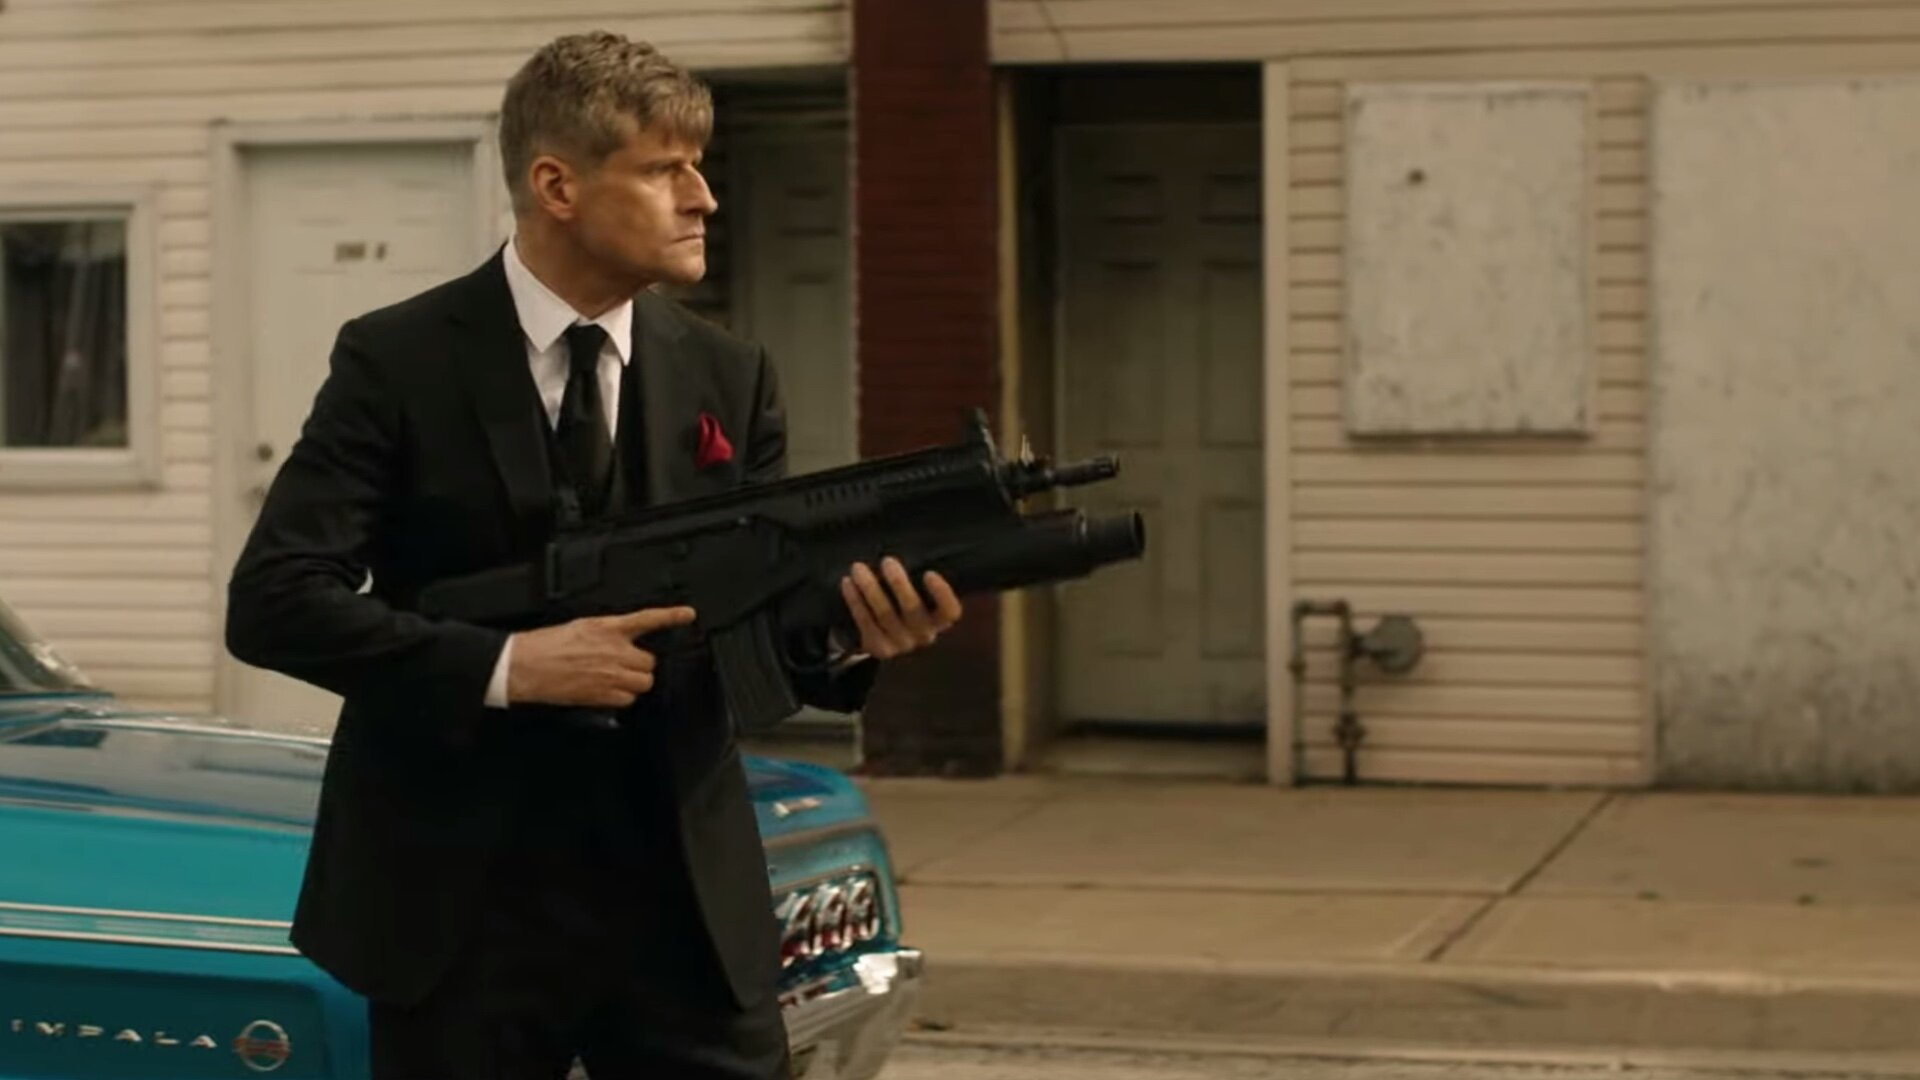 Crispin Glover is a Psychopathic Contract Killer Out For Revenge in Red-Band Trailer For LUCKY DAY